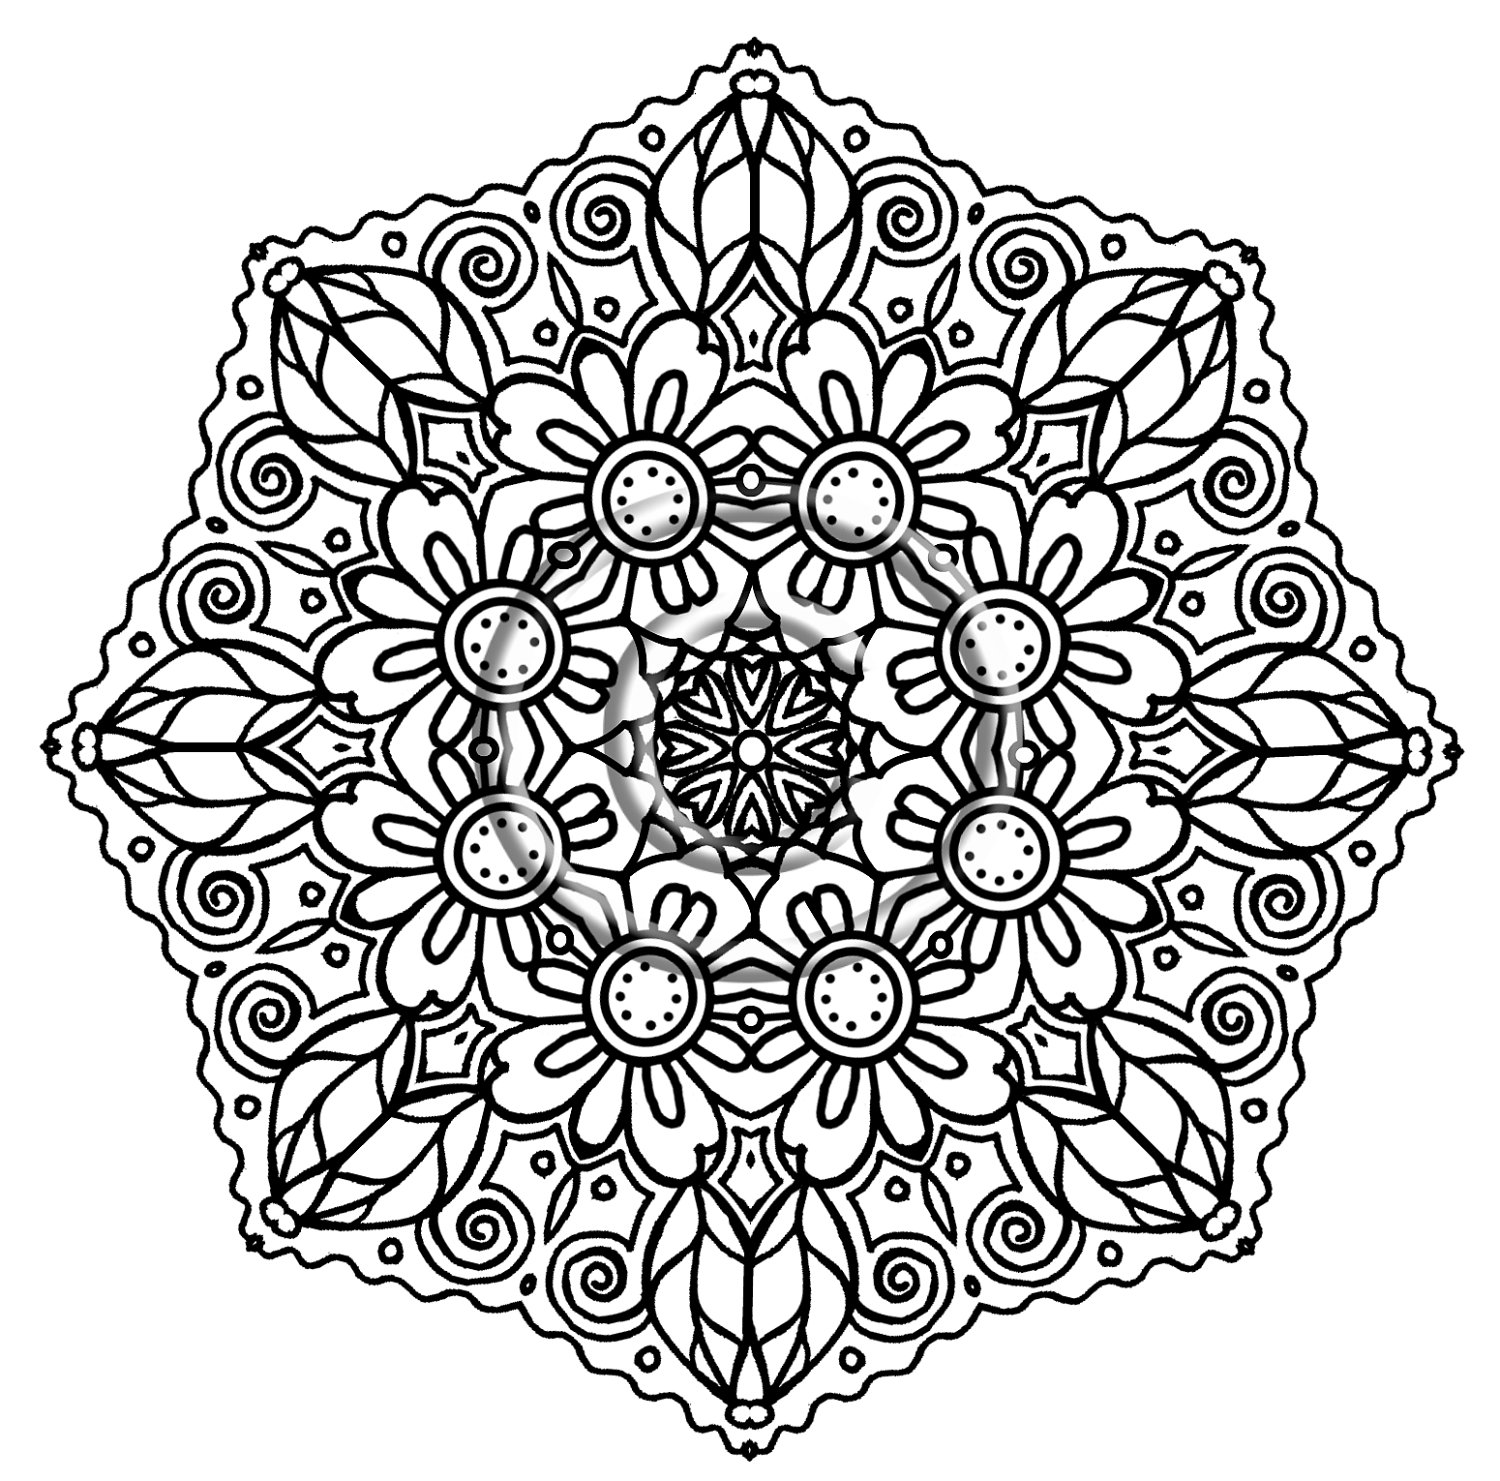 abstract flower coloring pages detailed flower coloring pages to download and print for free coloring flower abstract pages